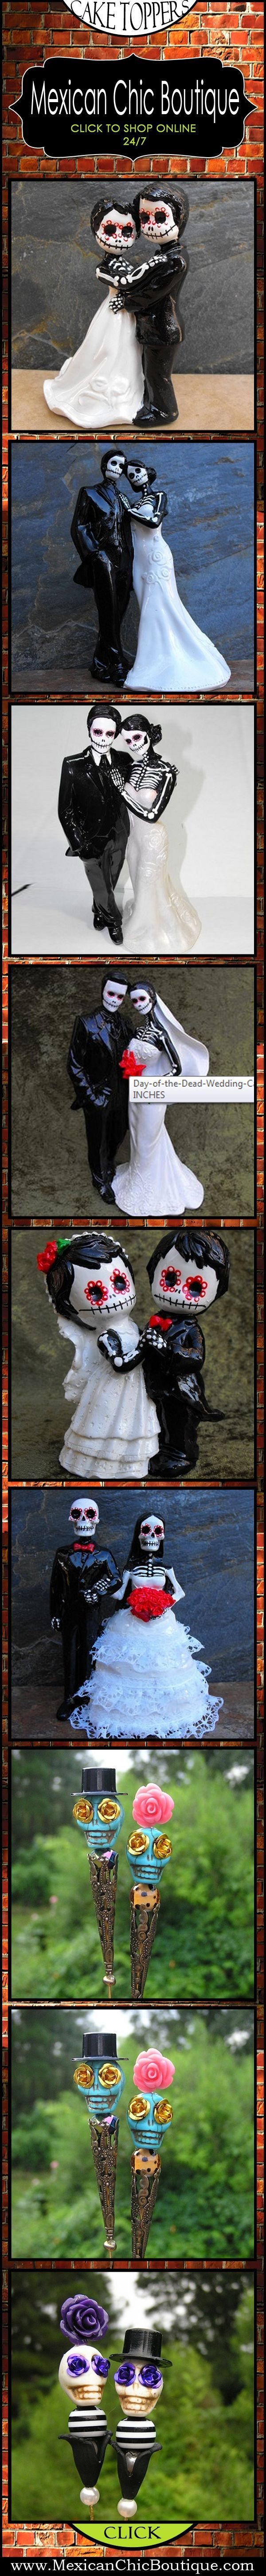 Day of the Dead | Wedding Cake Topper | Wedding | Cake Topper | Skull | Dia de los Muertos | Skeleton Figurines | Mexican Decorations | Mexican Art | Mexican Folk Art ♥ http://www.mexicanchicboutique.com/p/skulls.html